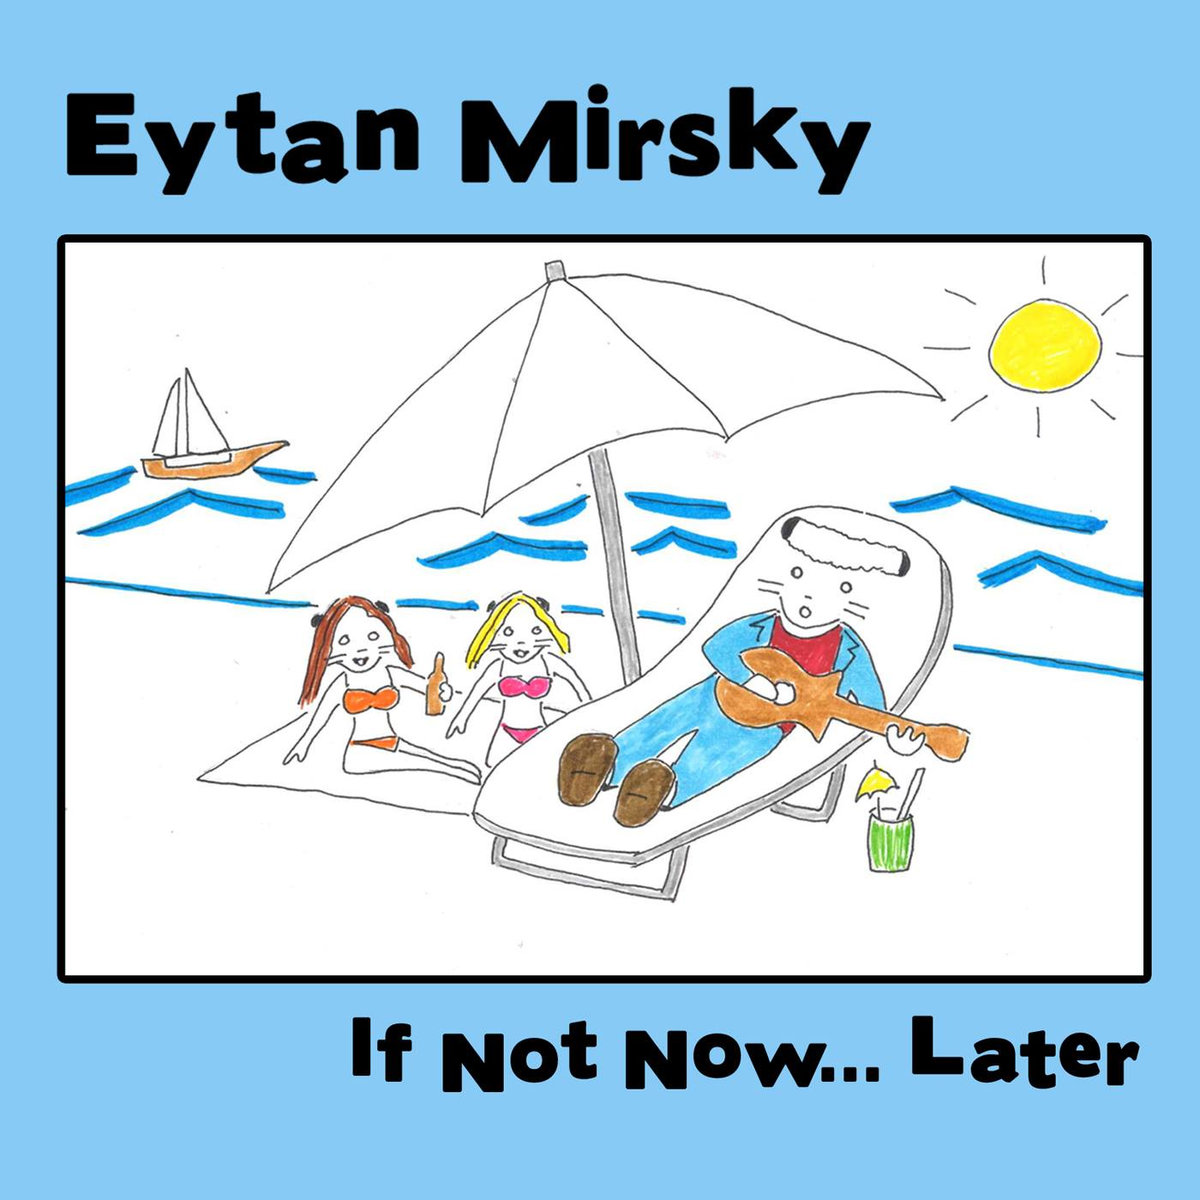 Eytan Mirsky - If not now... later (2019)